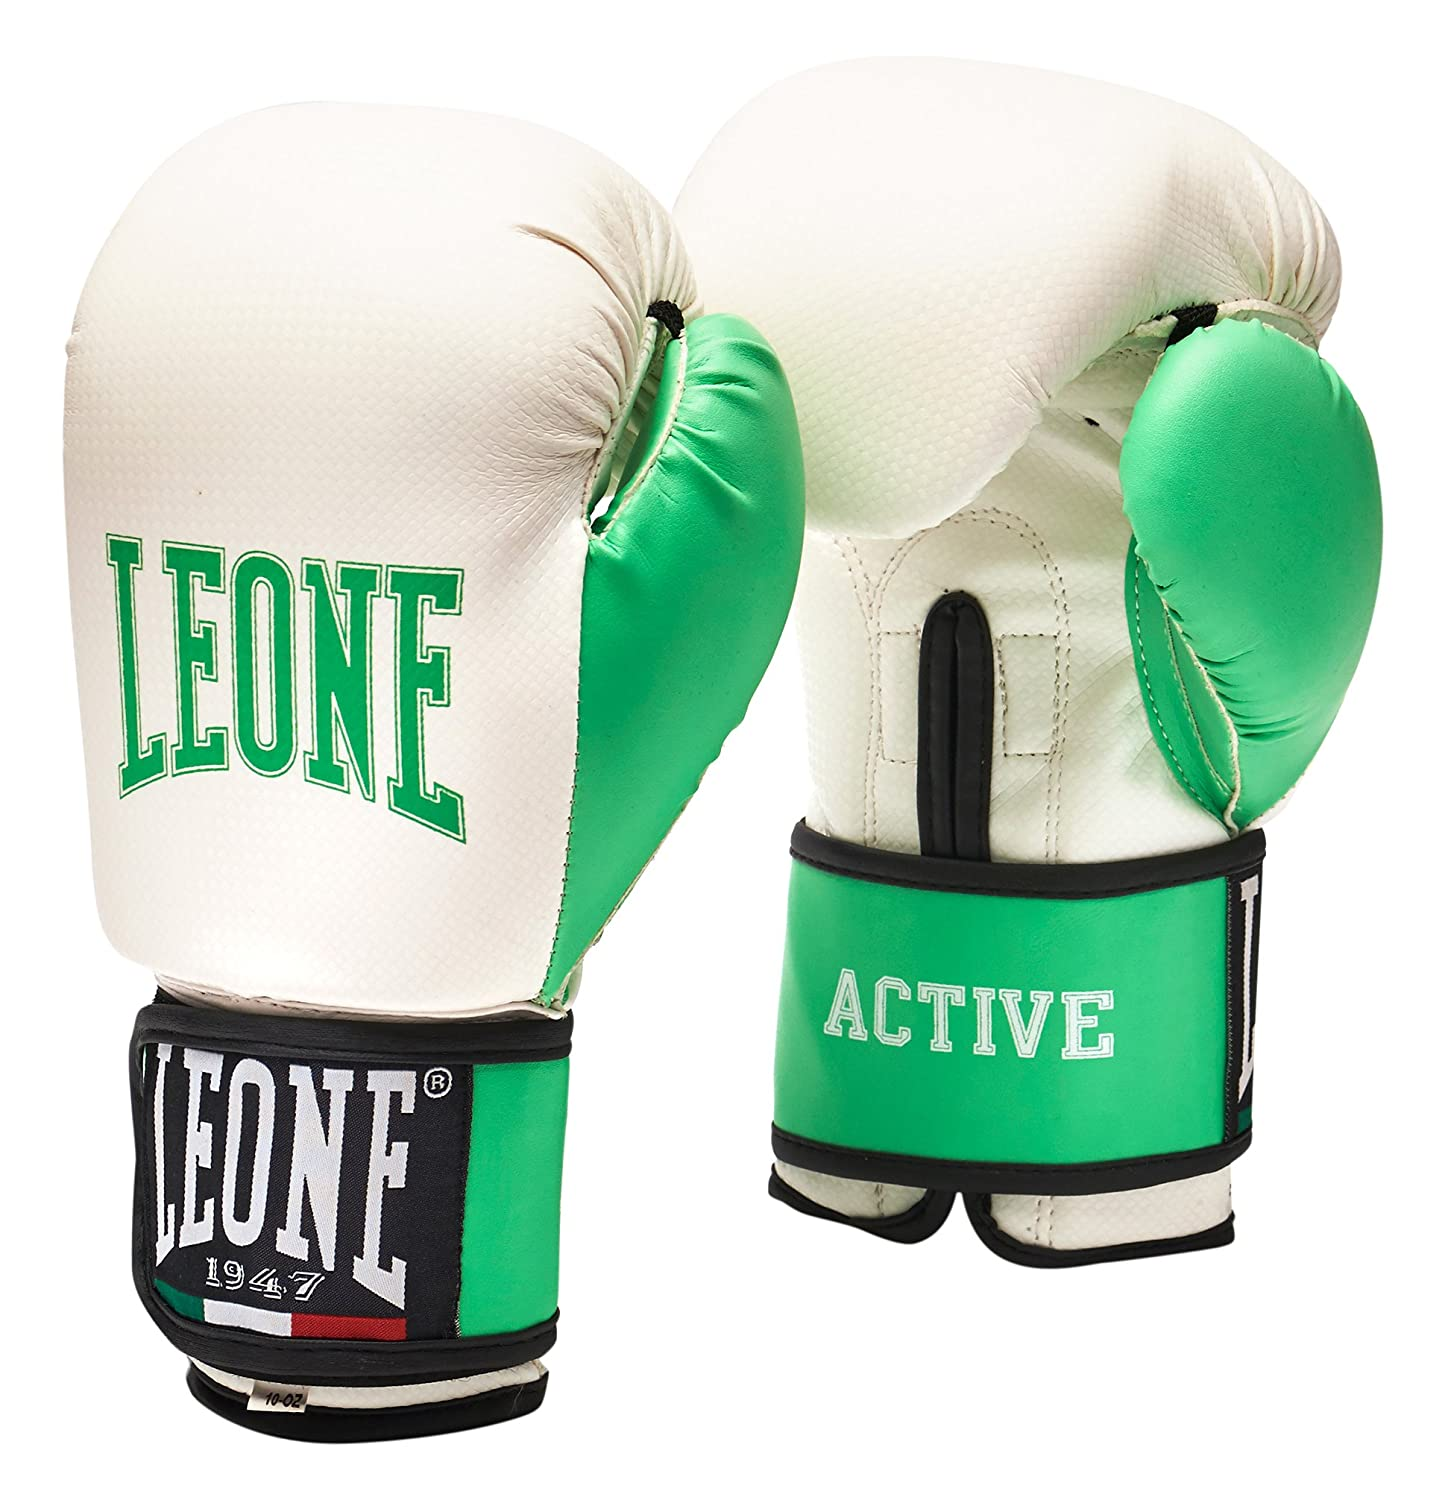 0 Leone 1947 Active Lady Boxhandschuhe, Weiß, M Weiß Live on the Edge Ltd LN-GN076-WHT